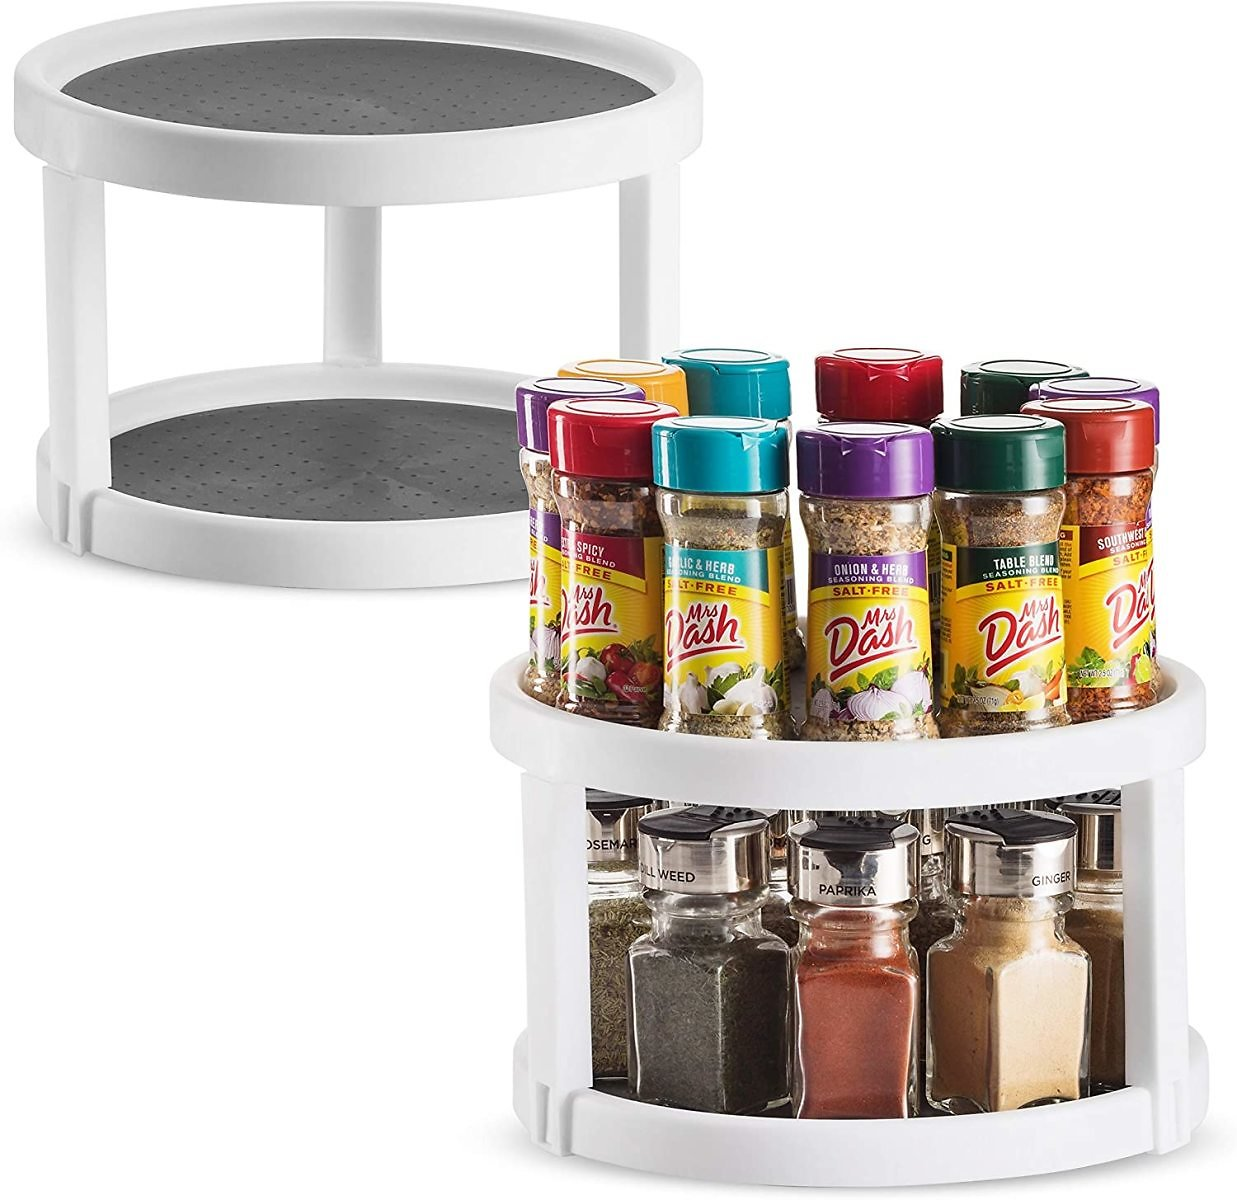 Set of 2 Lazy Susan Turntable Cabinet Organizer - 2 Tier